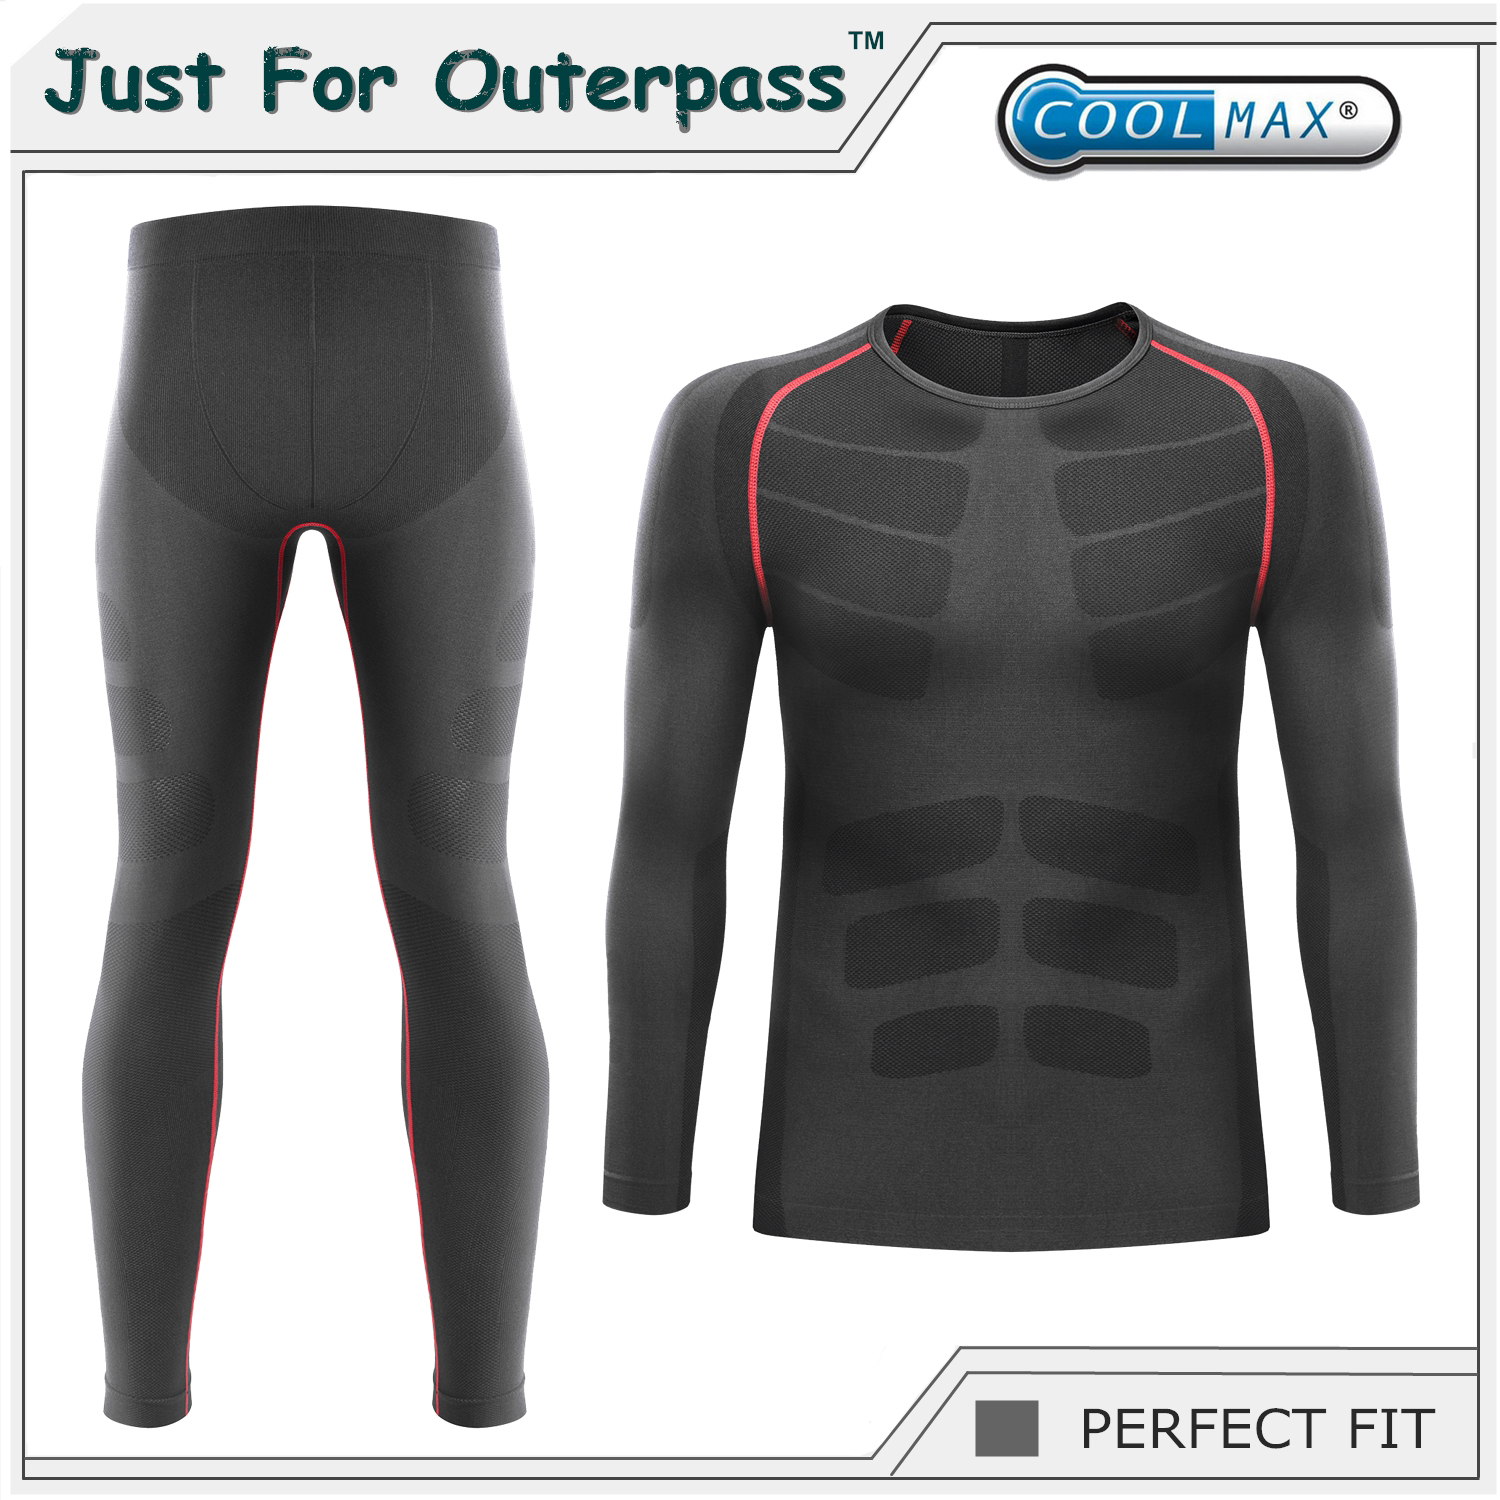 2017 Winter Thermal Underwear Sets Men Brand Quick Dry Anti-microbial Stretch Men's Thermo Underwear Male Warm Long Johns HI-Q(China (Mainland))